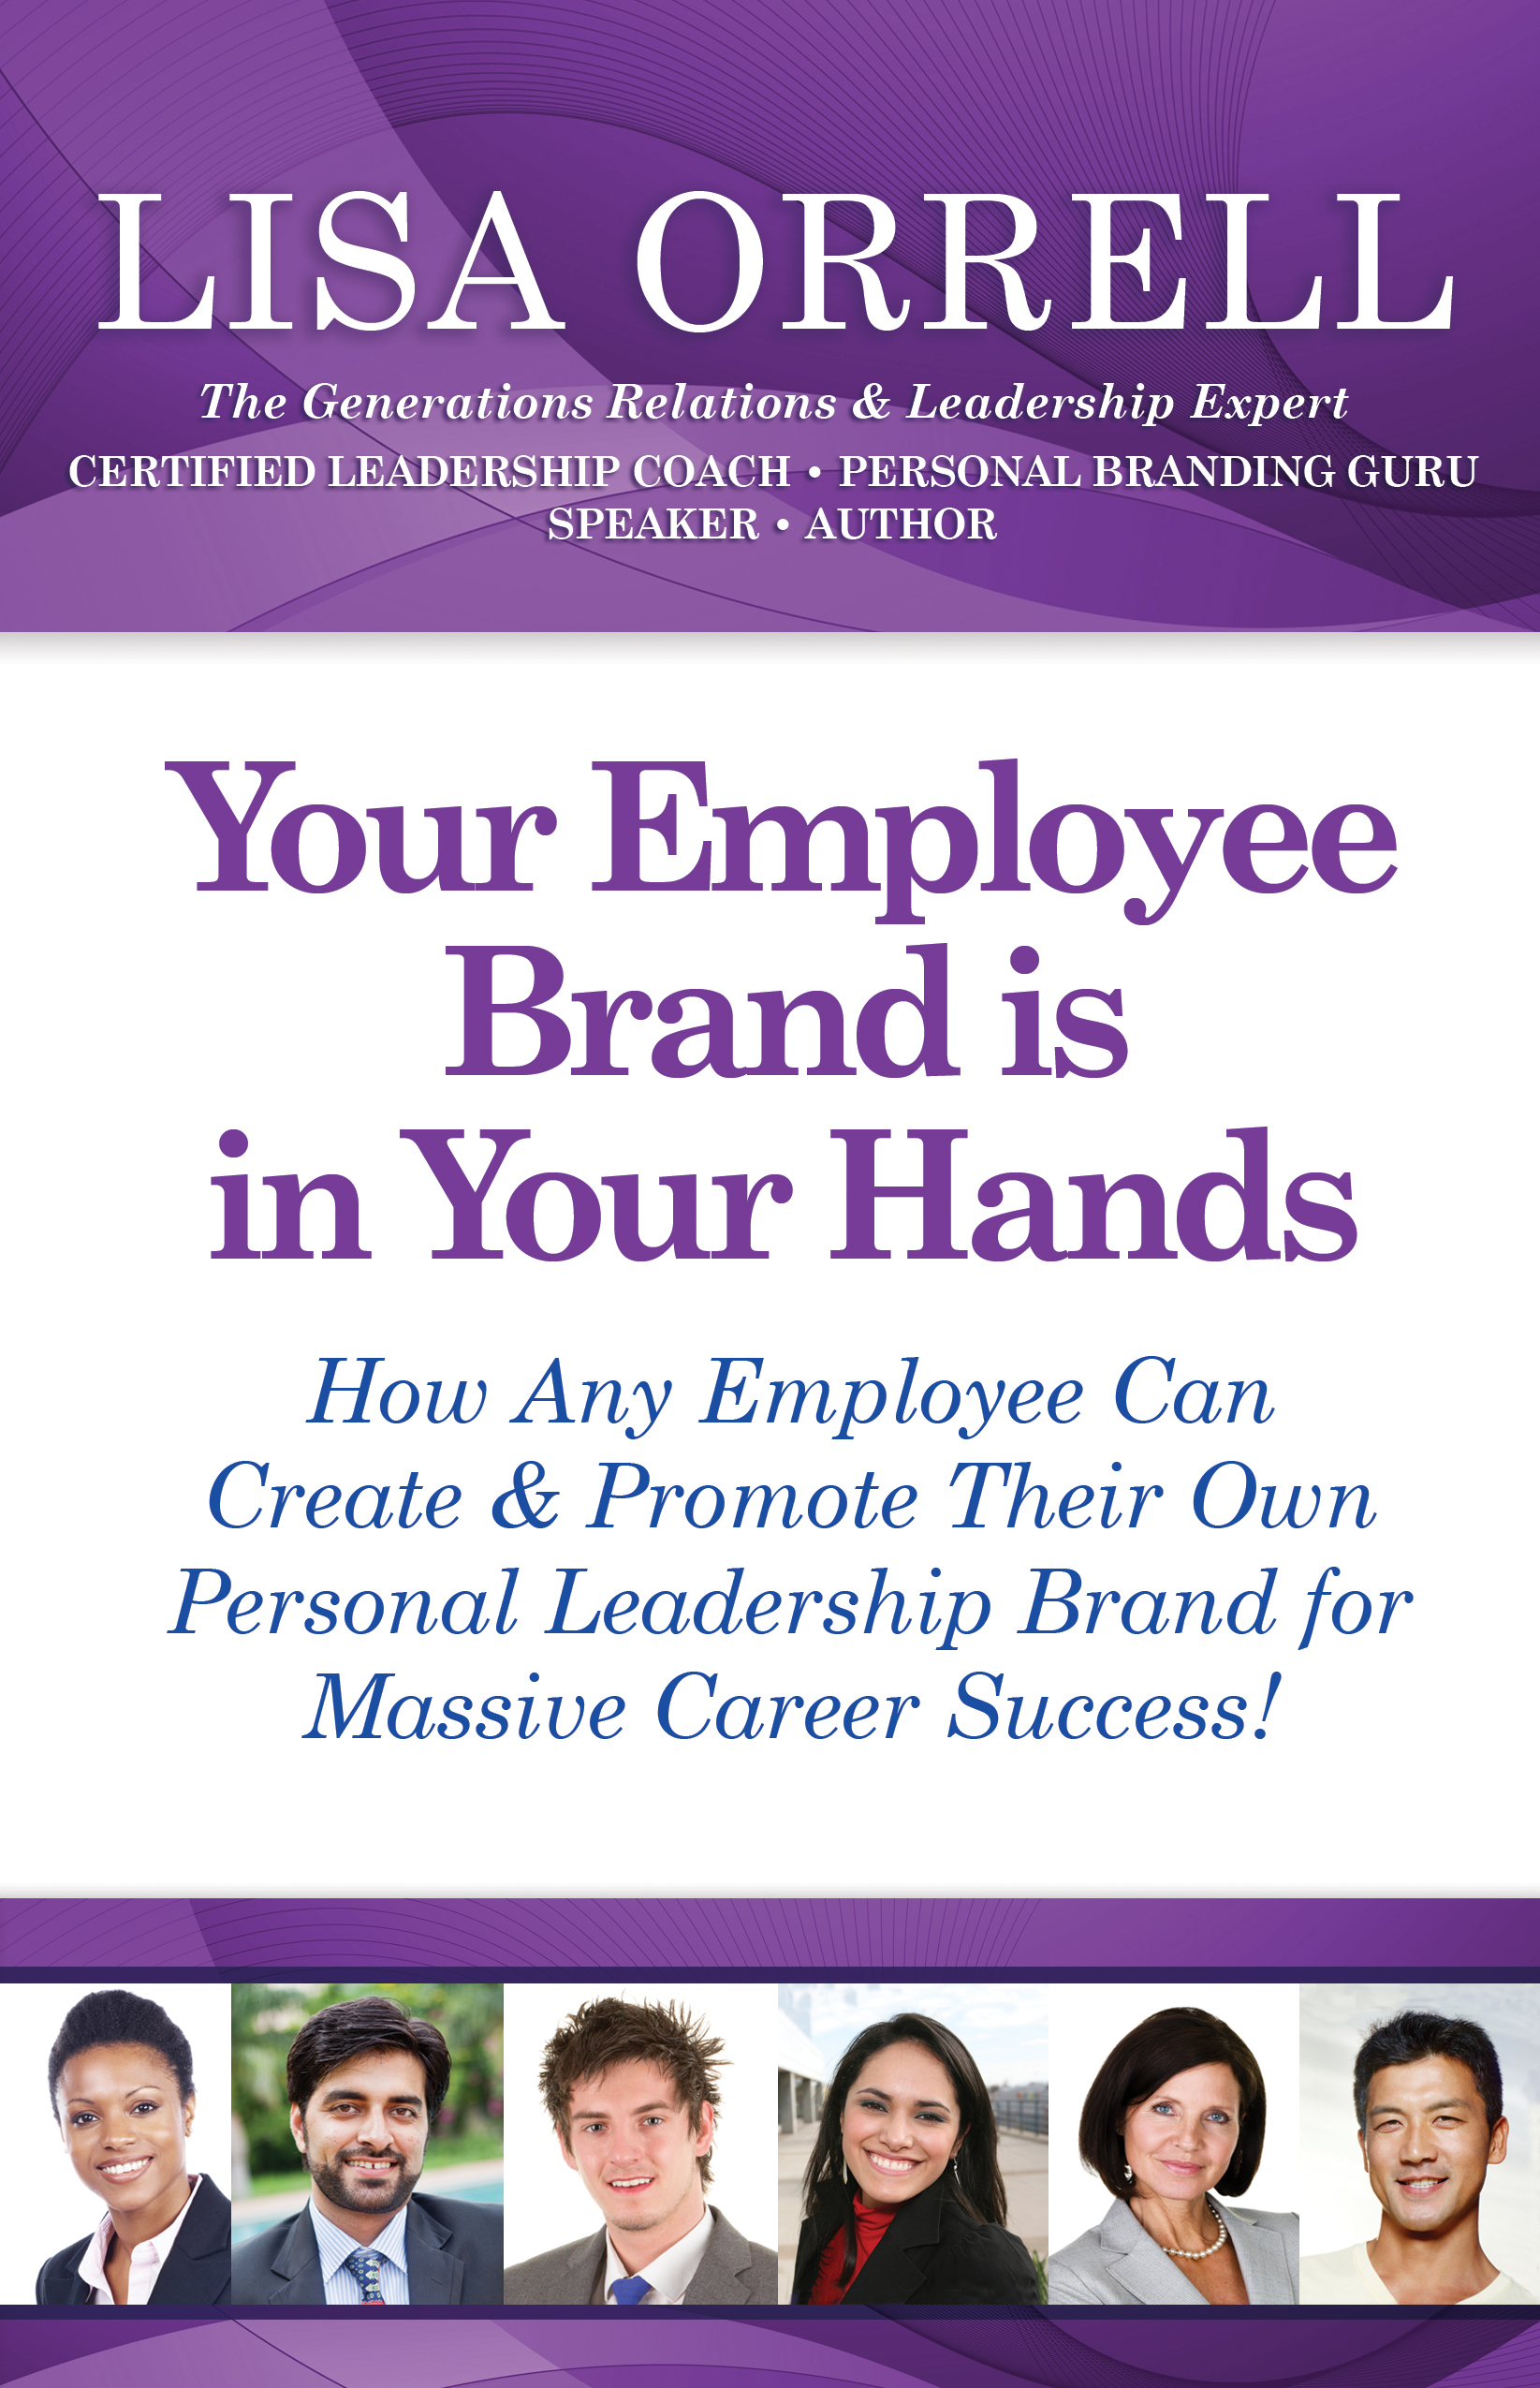 Your Employee Brand is in Your Hands